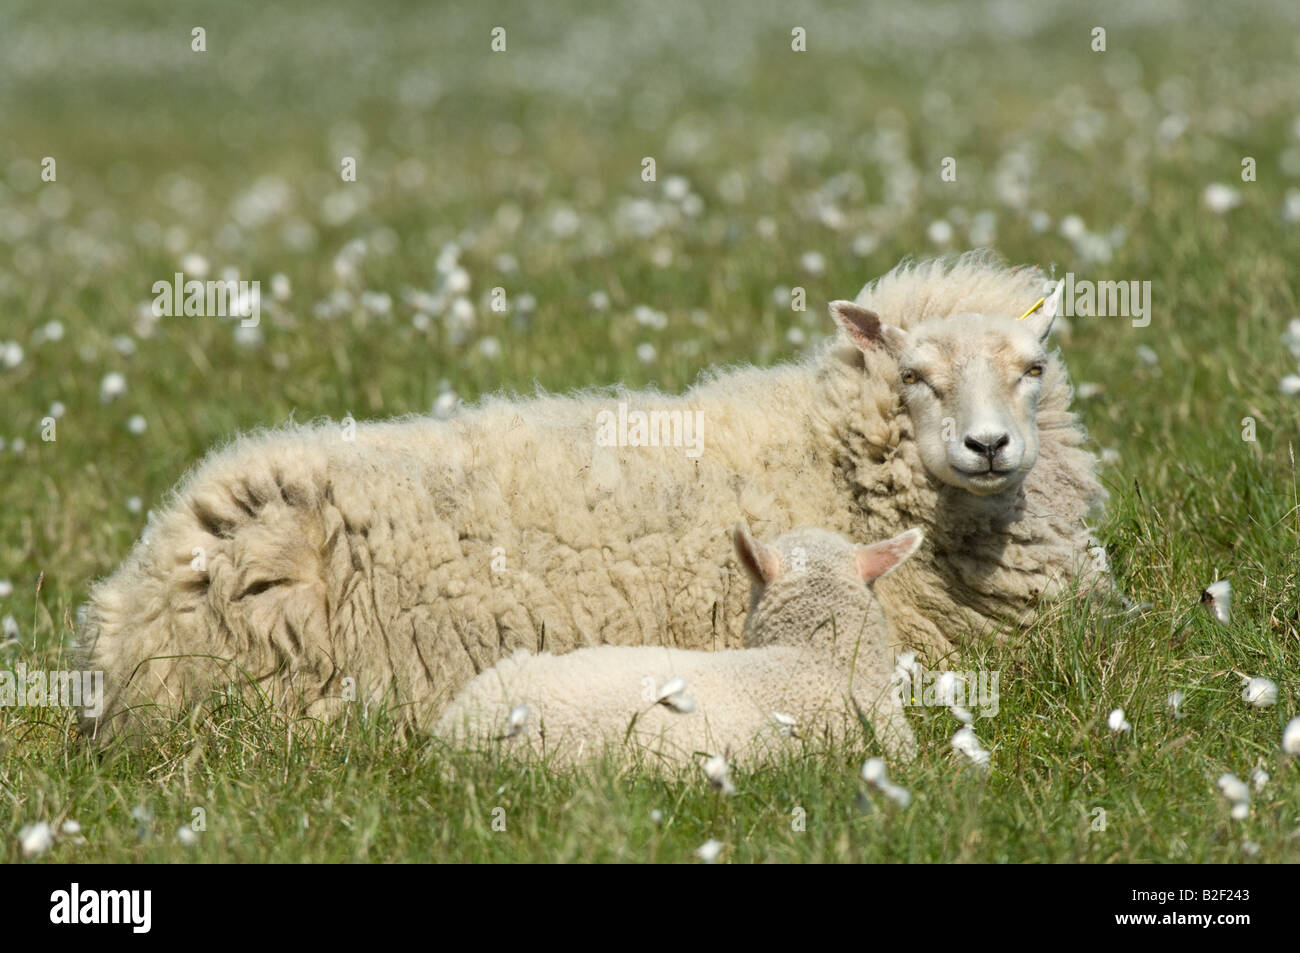 Shetland Sheep White Ewe with lamb resting among cotton grass Hermaness Unst Shetland Islands Scotland UK Europe - Stock Image